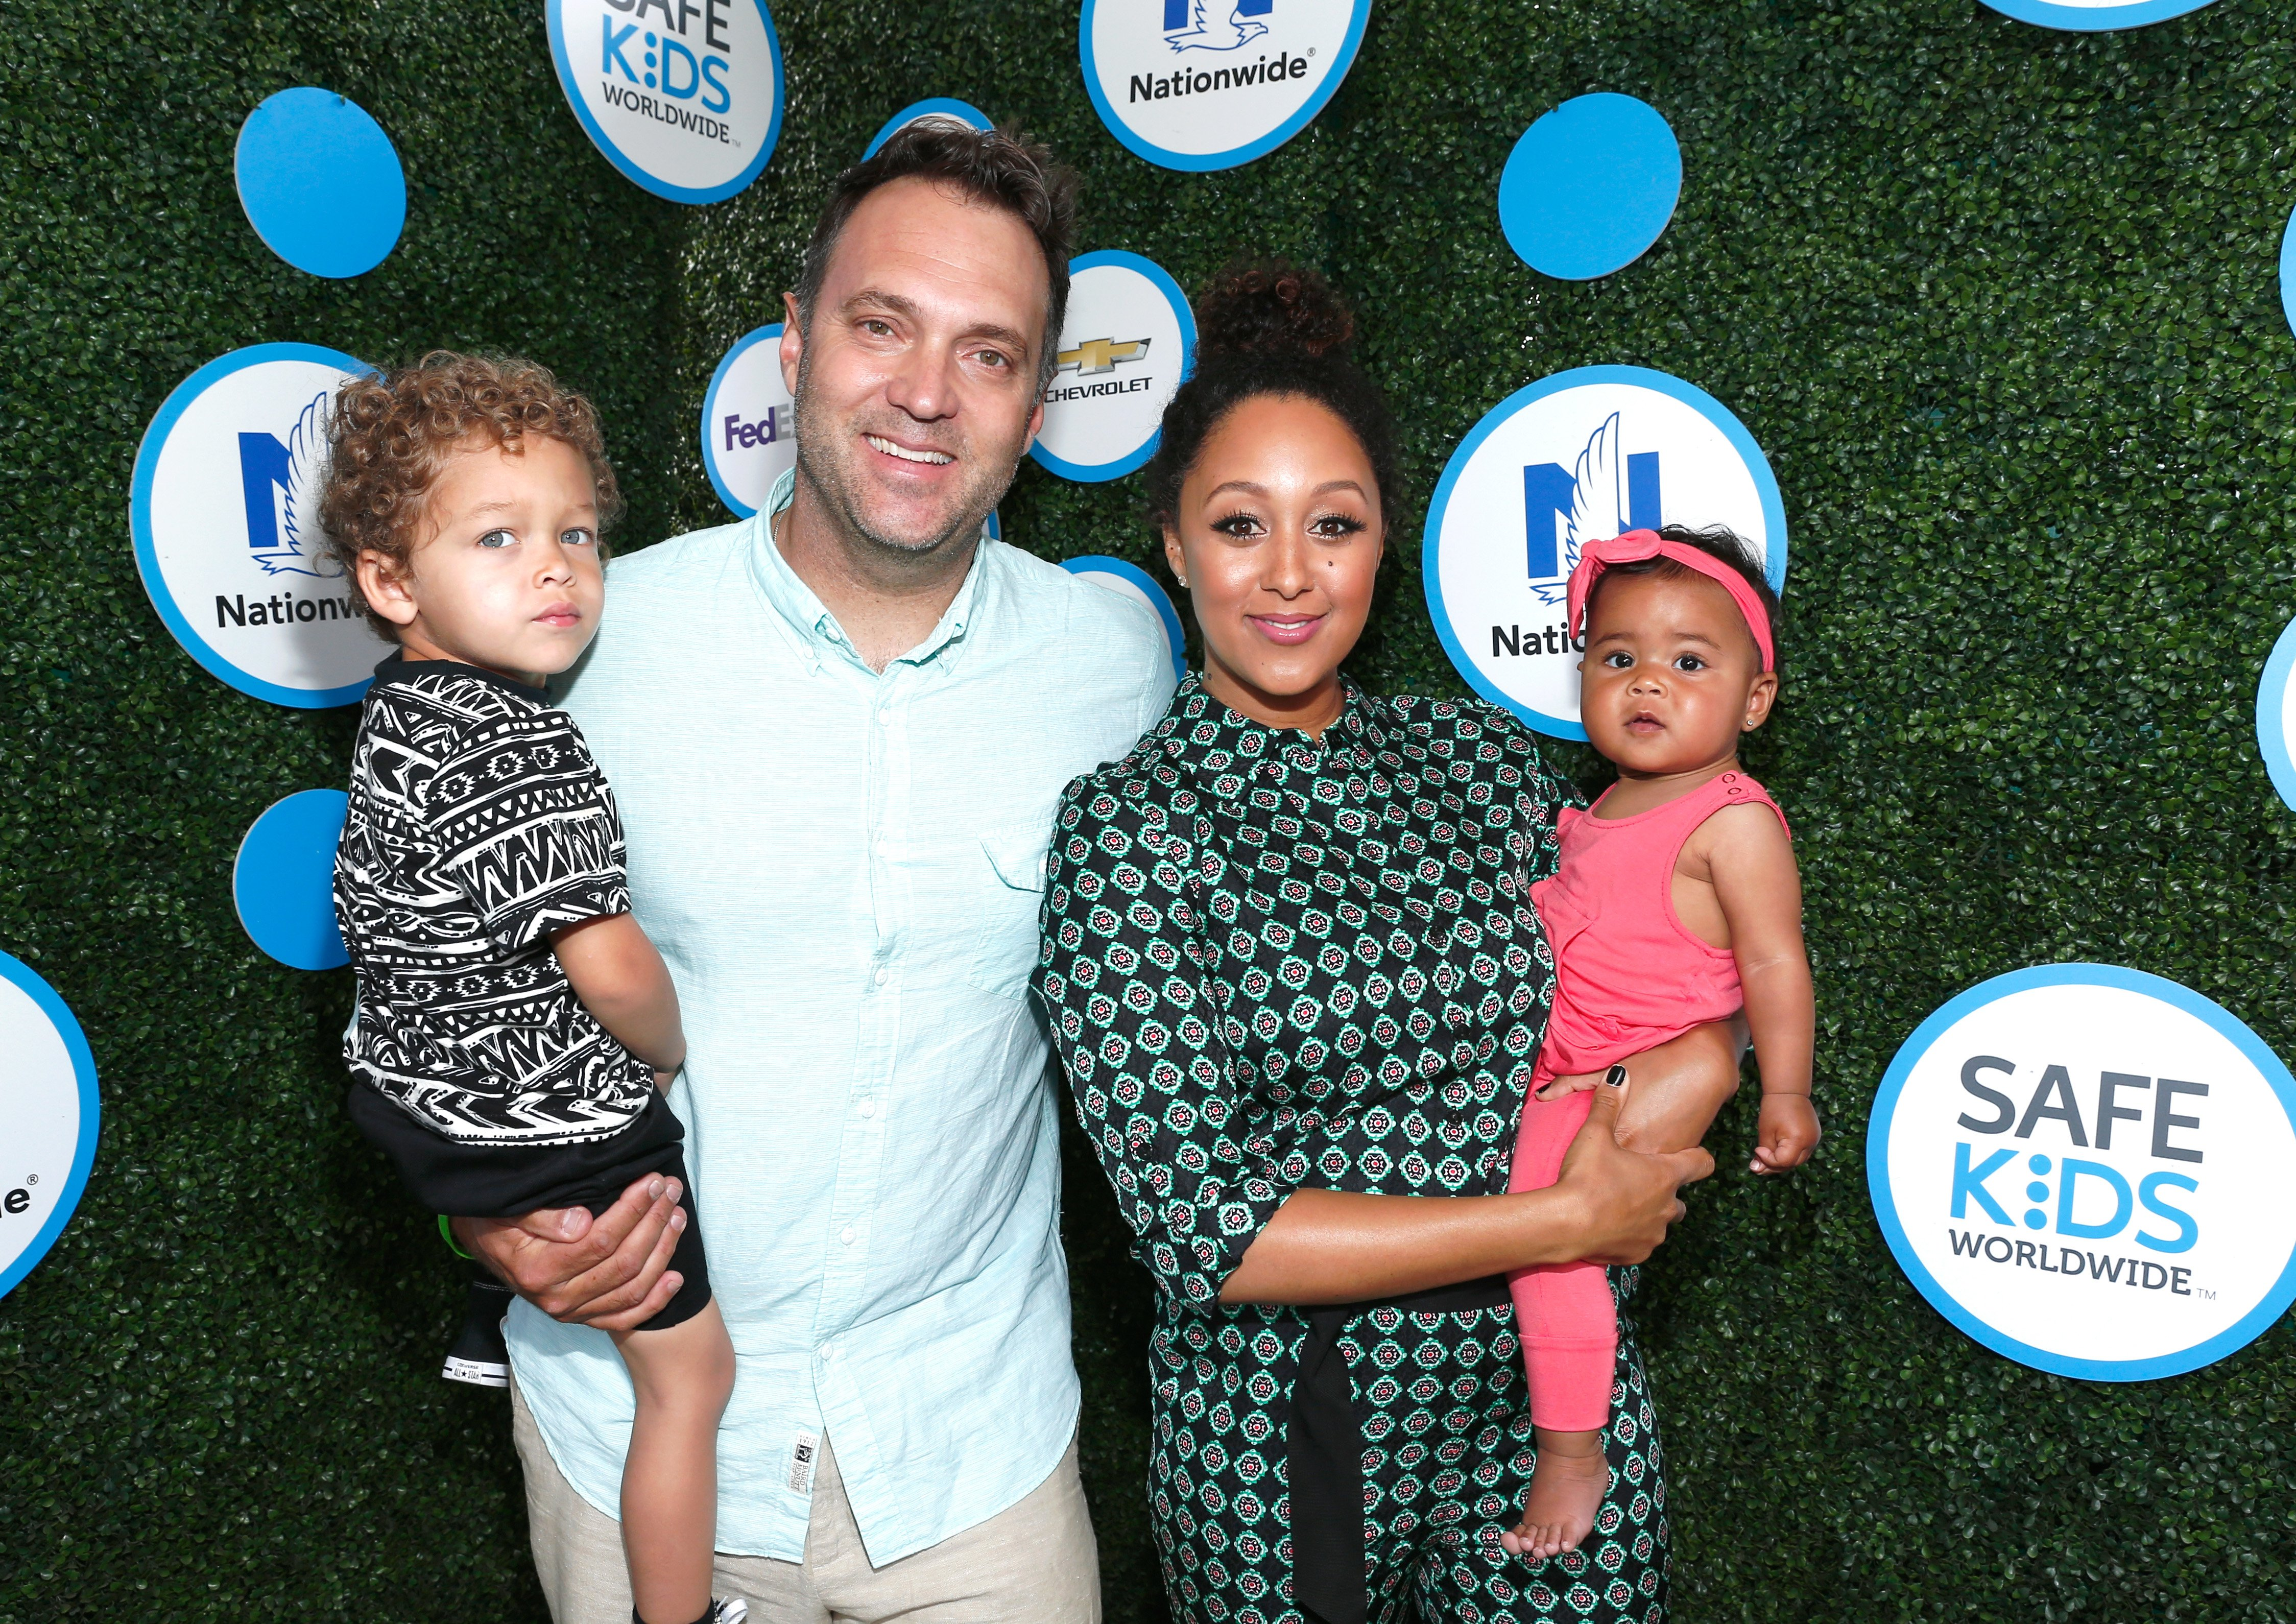 Adam Housley and Tamera Mowry with their two children at the Safe Kids Day at Smashbox Studios on April 24, 2016 in Culver City, California.| Source: Getty Images